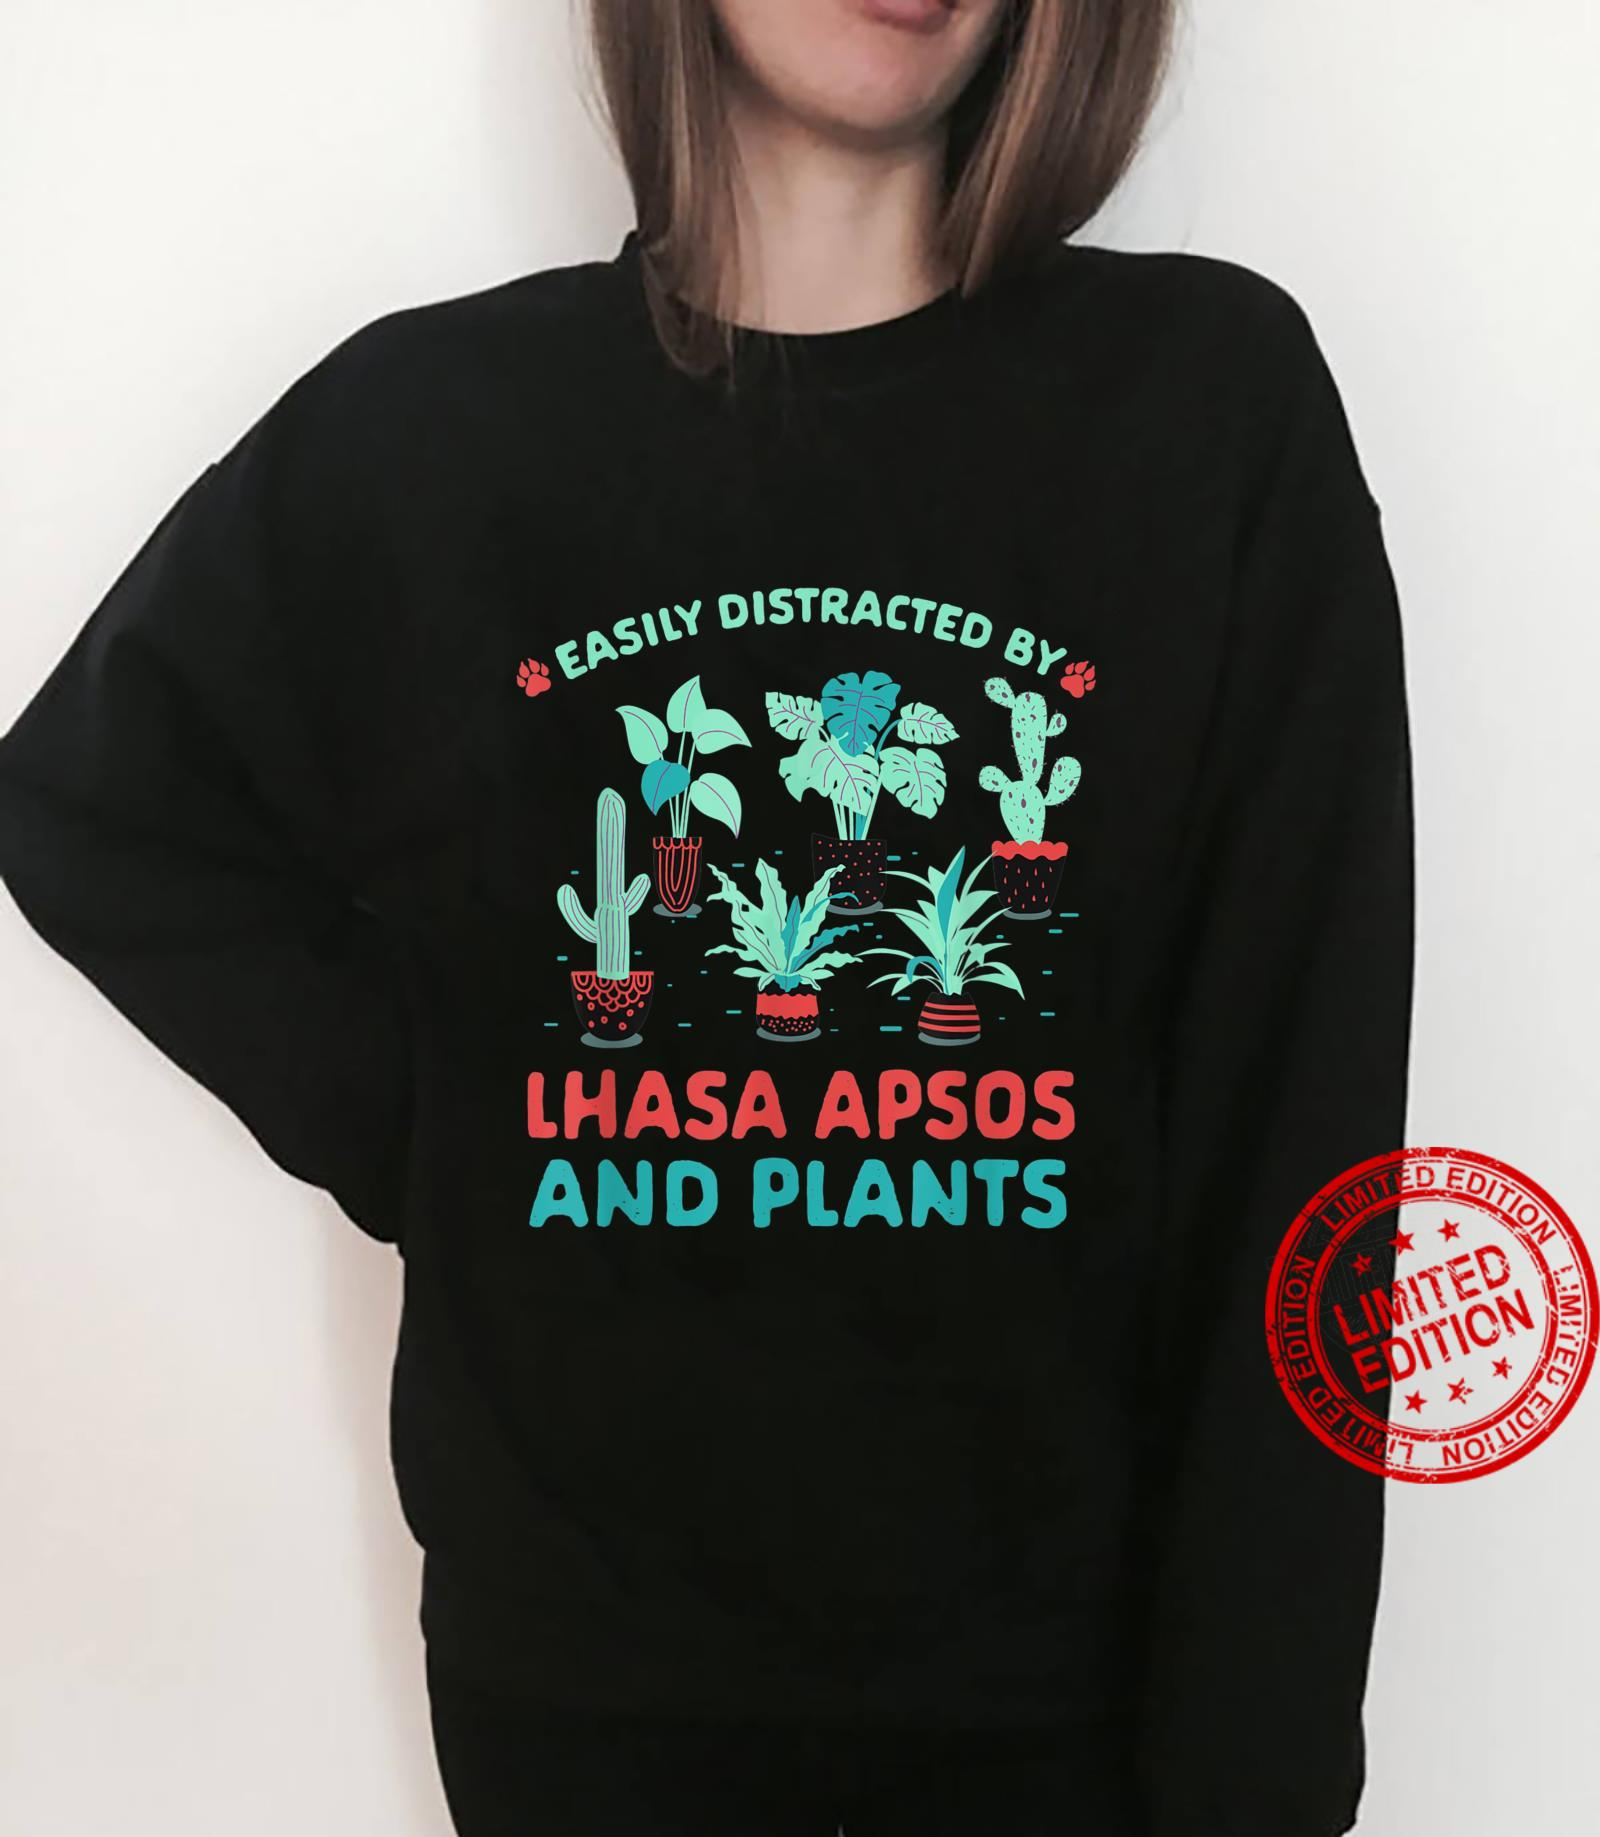 Easily Distracted by Lhasa Apsos and Plants Shirt sweater